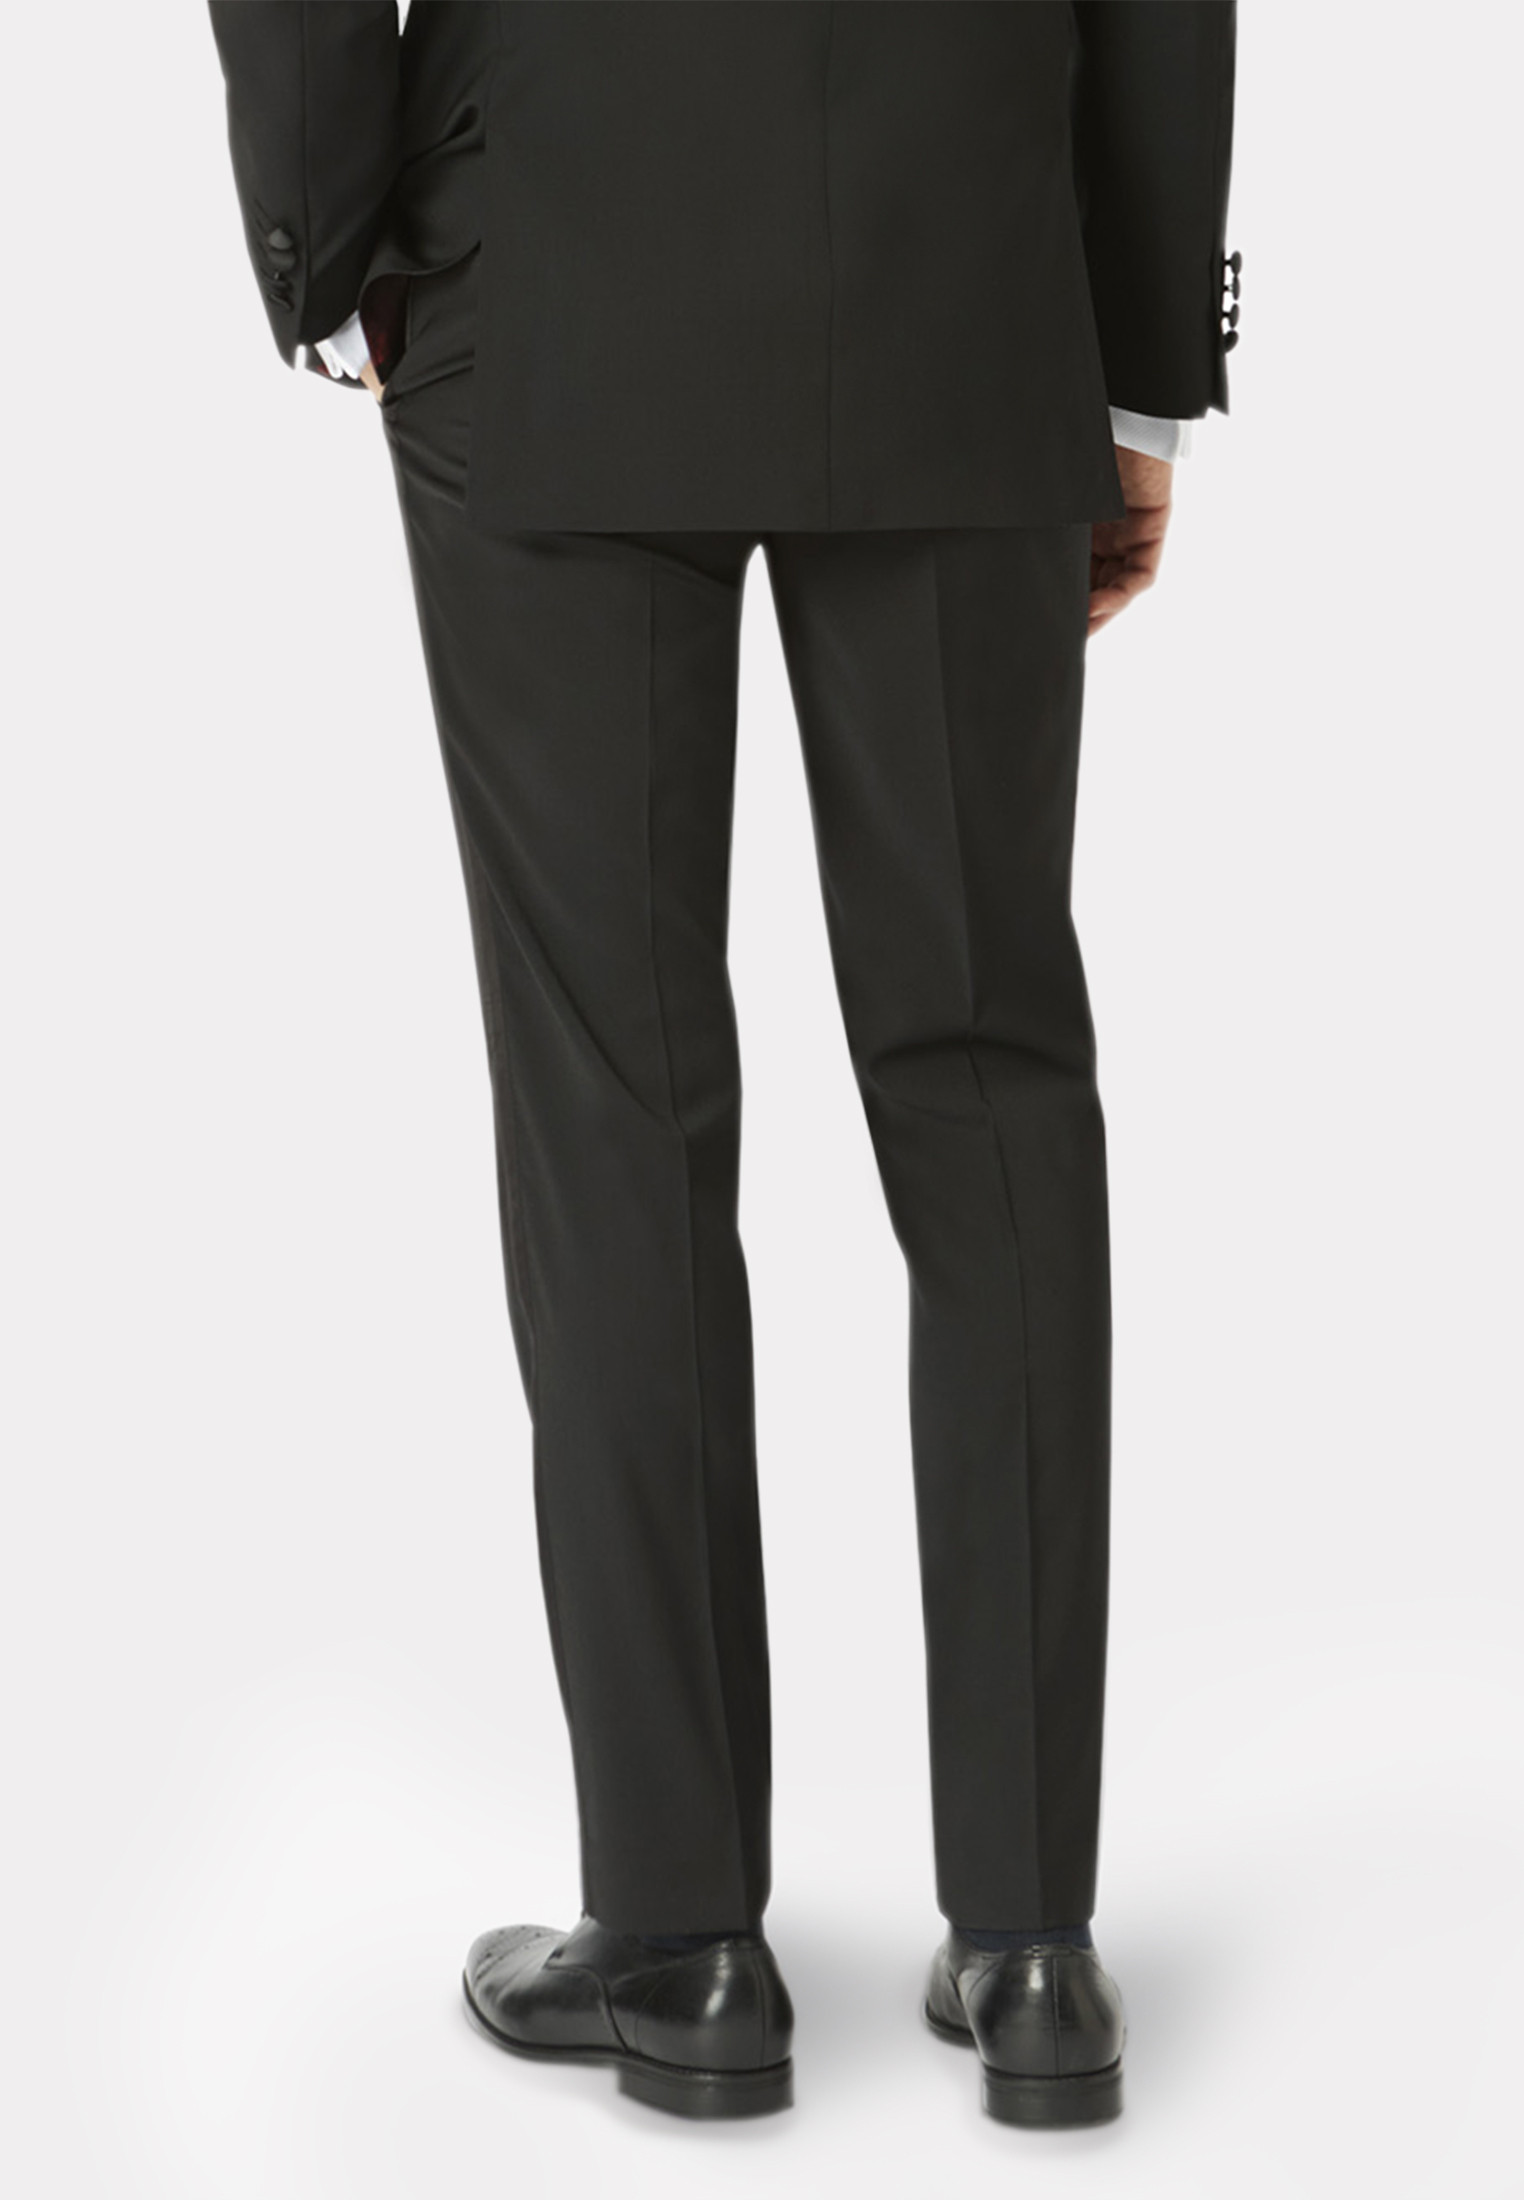 Sapphire Dinner Suit Trousers